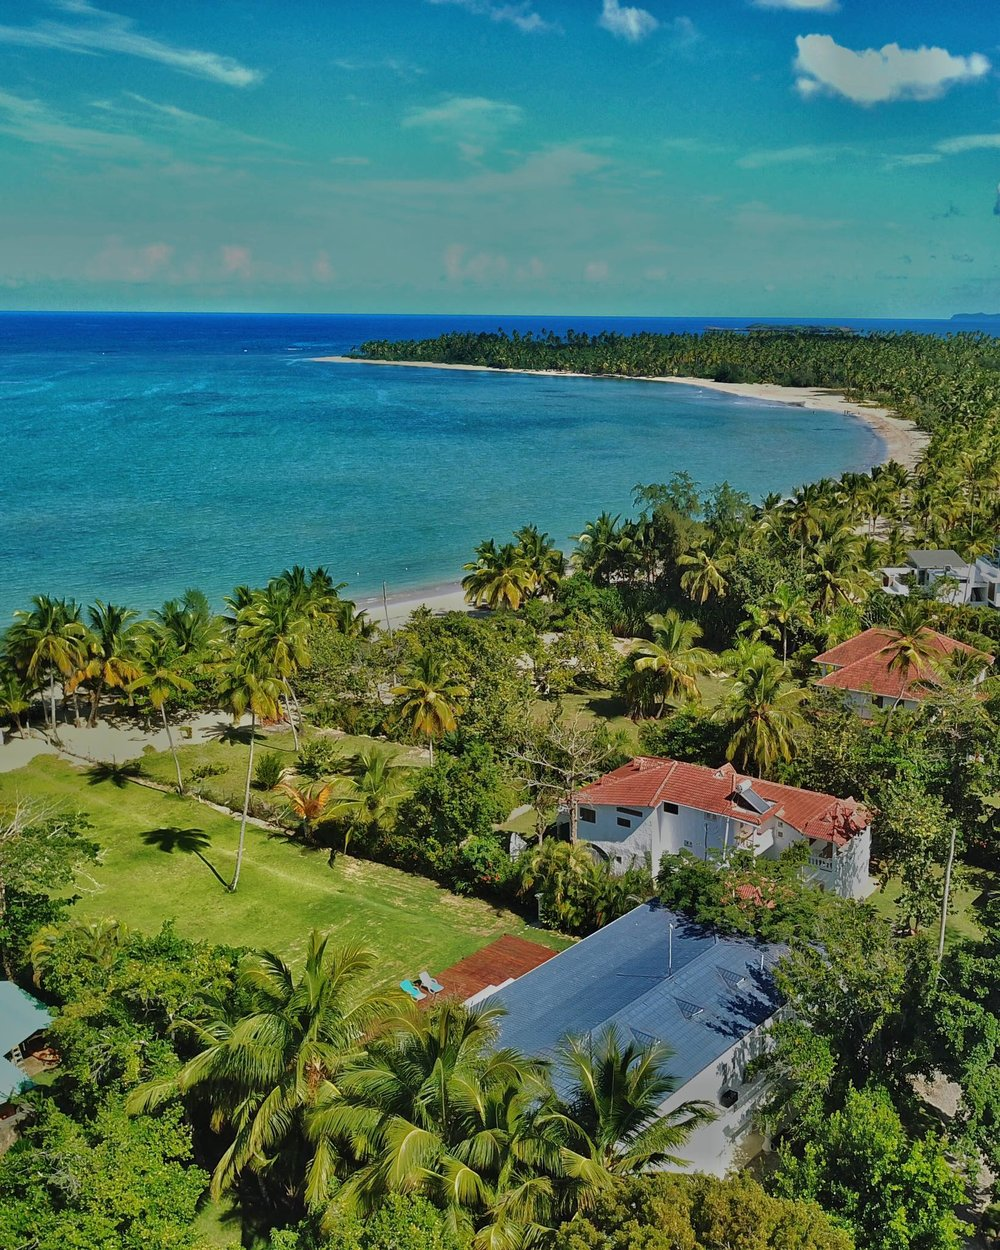 Puerto Bahia : The Perfect Place To Dock Your Sailboat In Samana, Dominican Republic